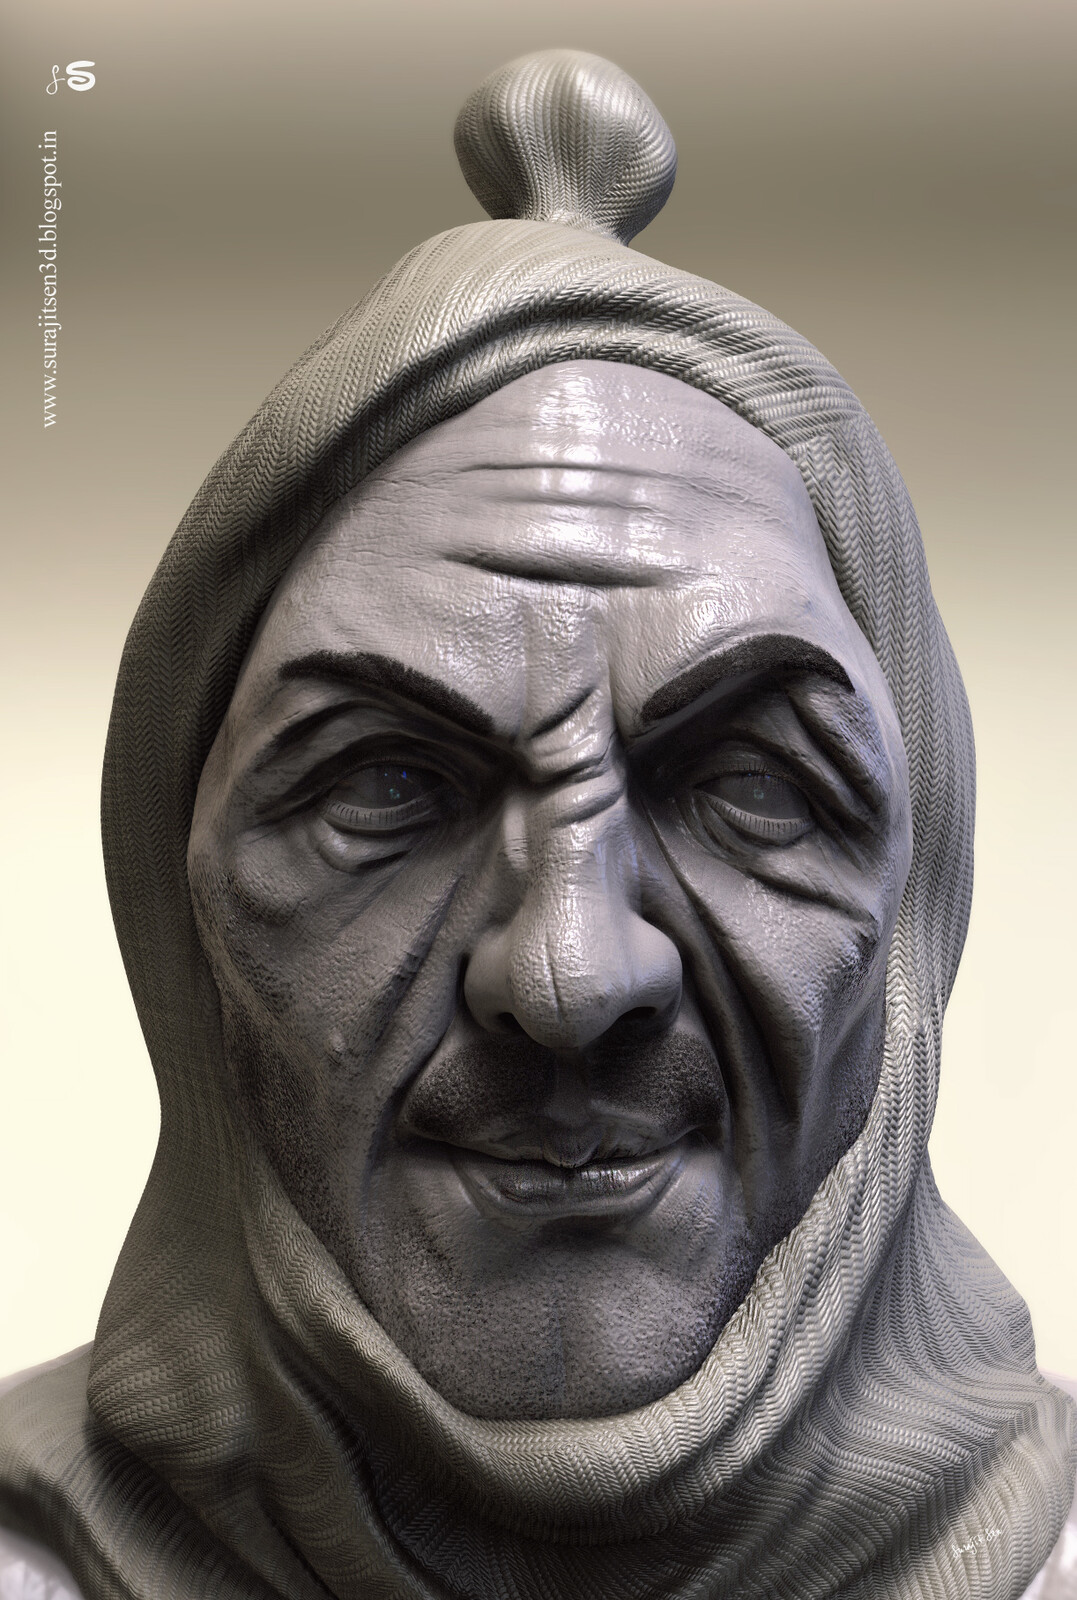 Wish to share my updated version of Conspirator_v1_sculpture.